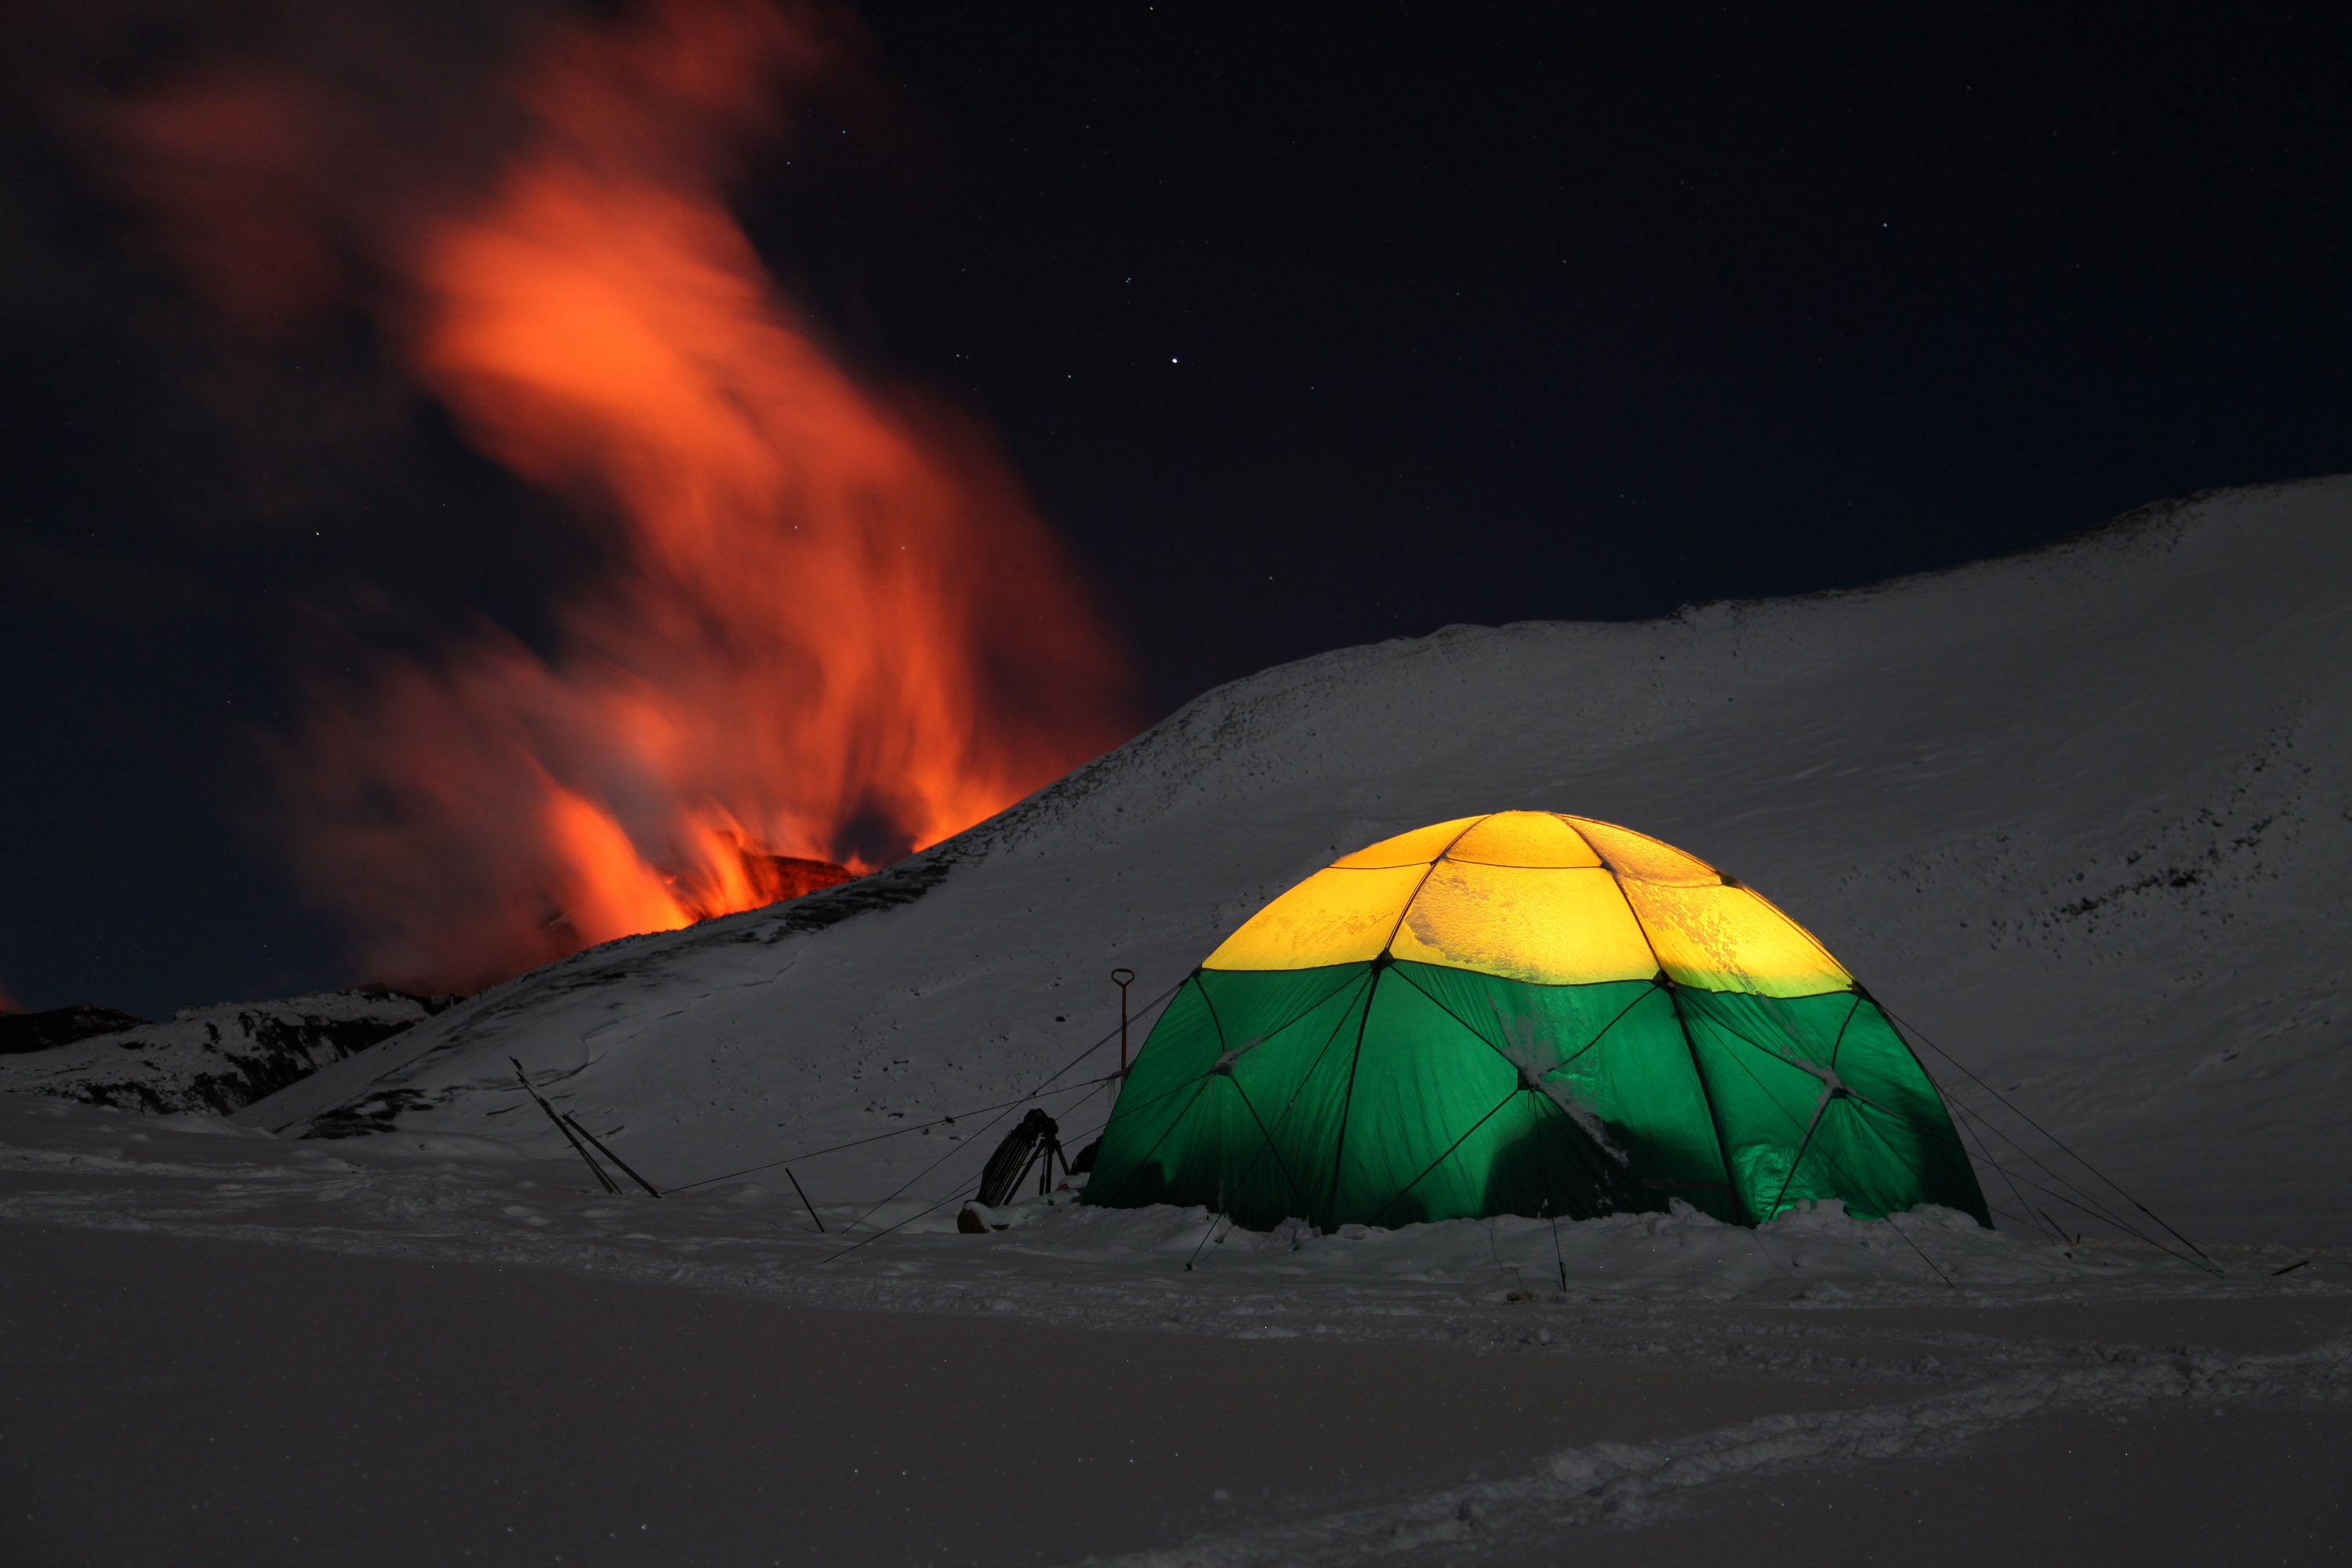 volcanoes 2014 iavcei calendar published by quotbrown Тrout